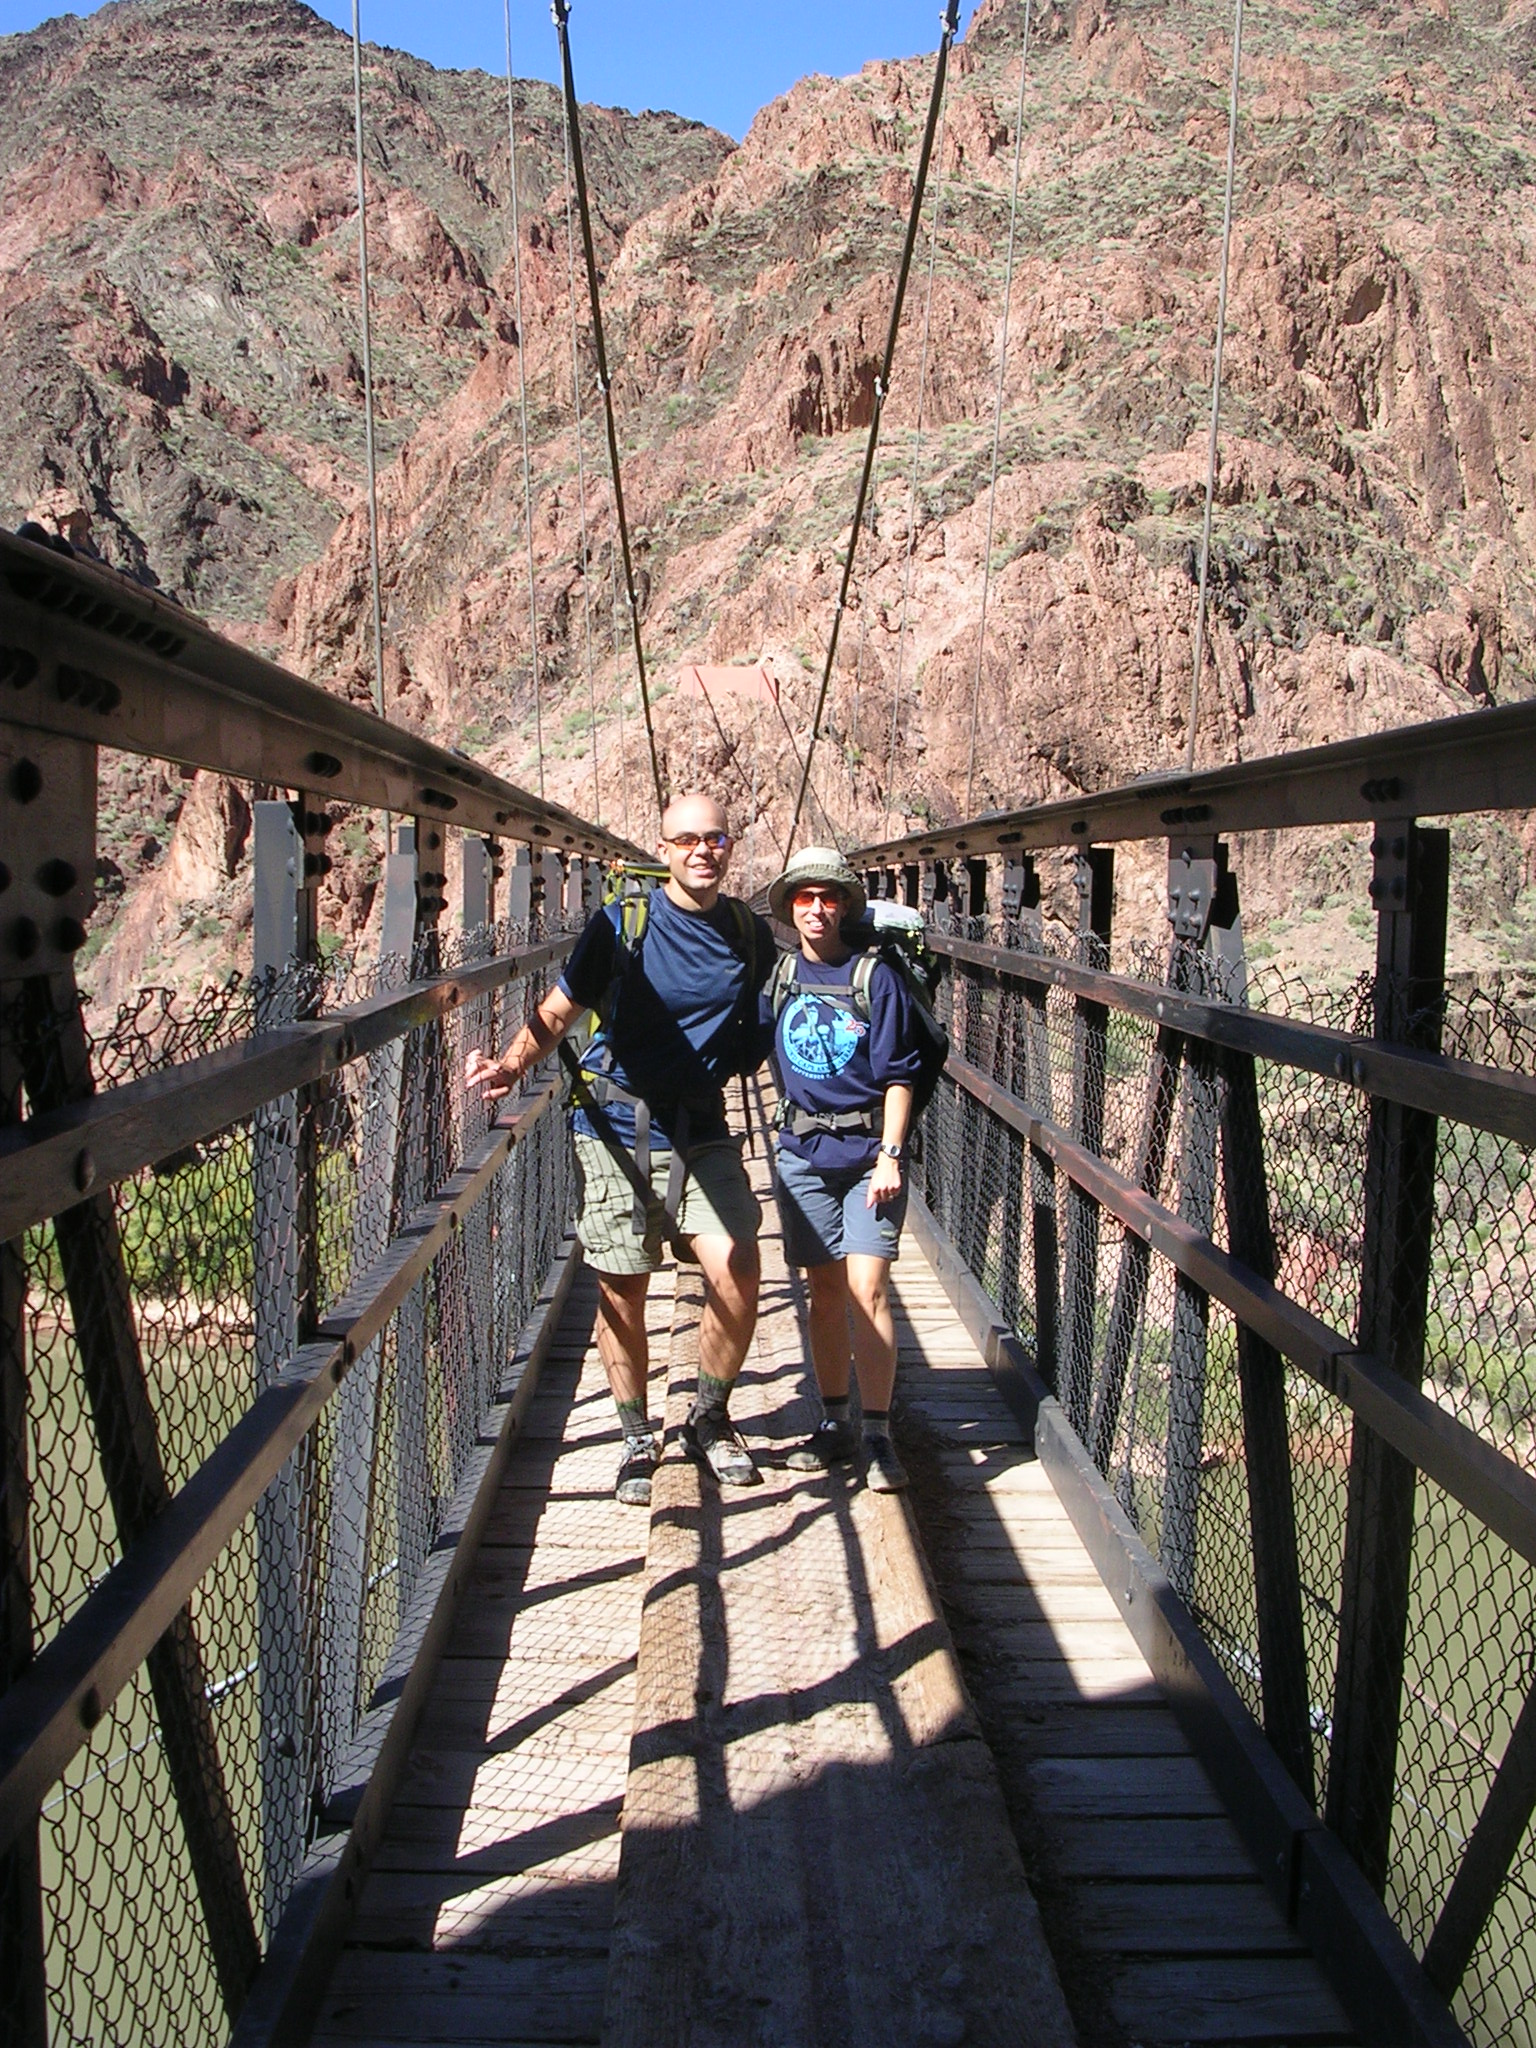 Brian and Susan on Black bridge